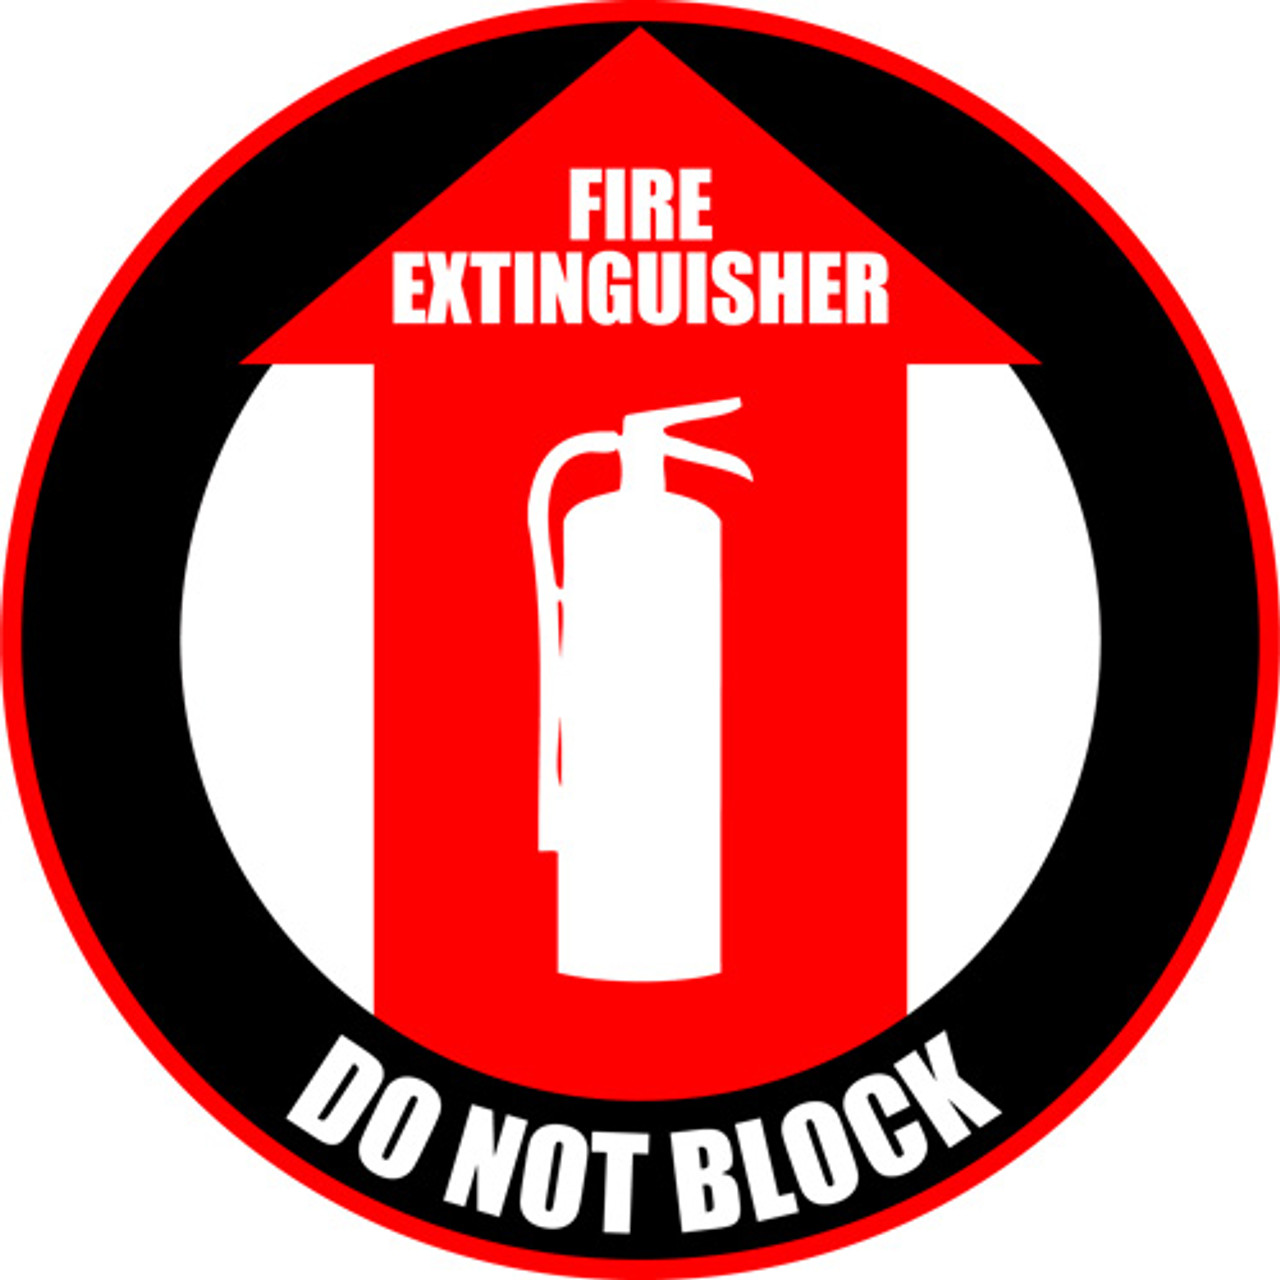 graphic relating to Printable Fire Extinguisher Signs referred to as Hearth Extinguisher: Do Not Block Surface area Indication